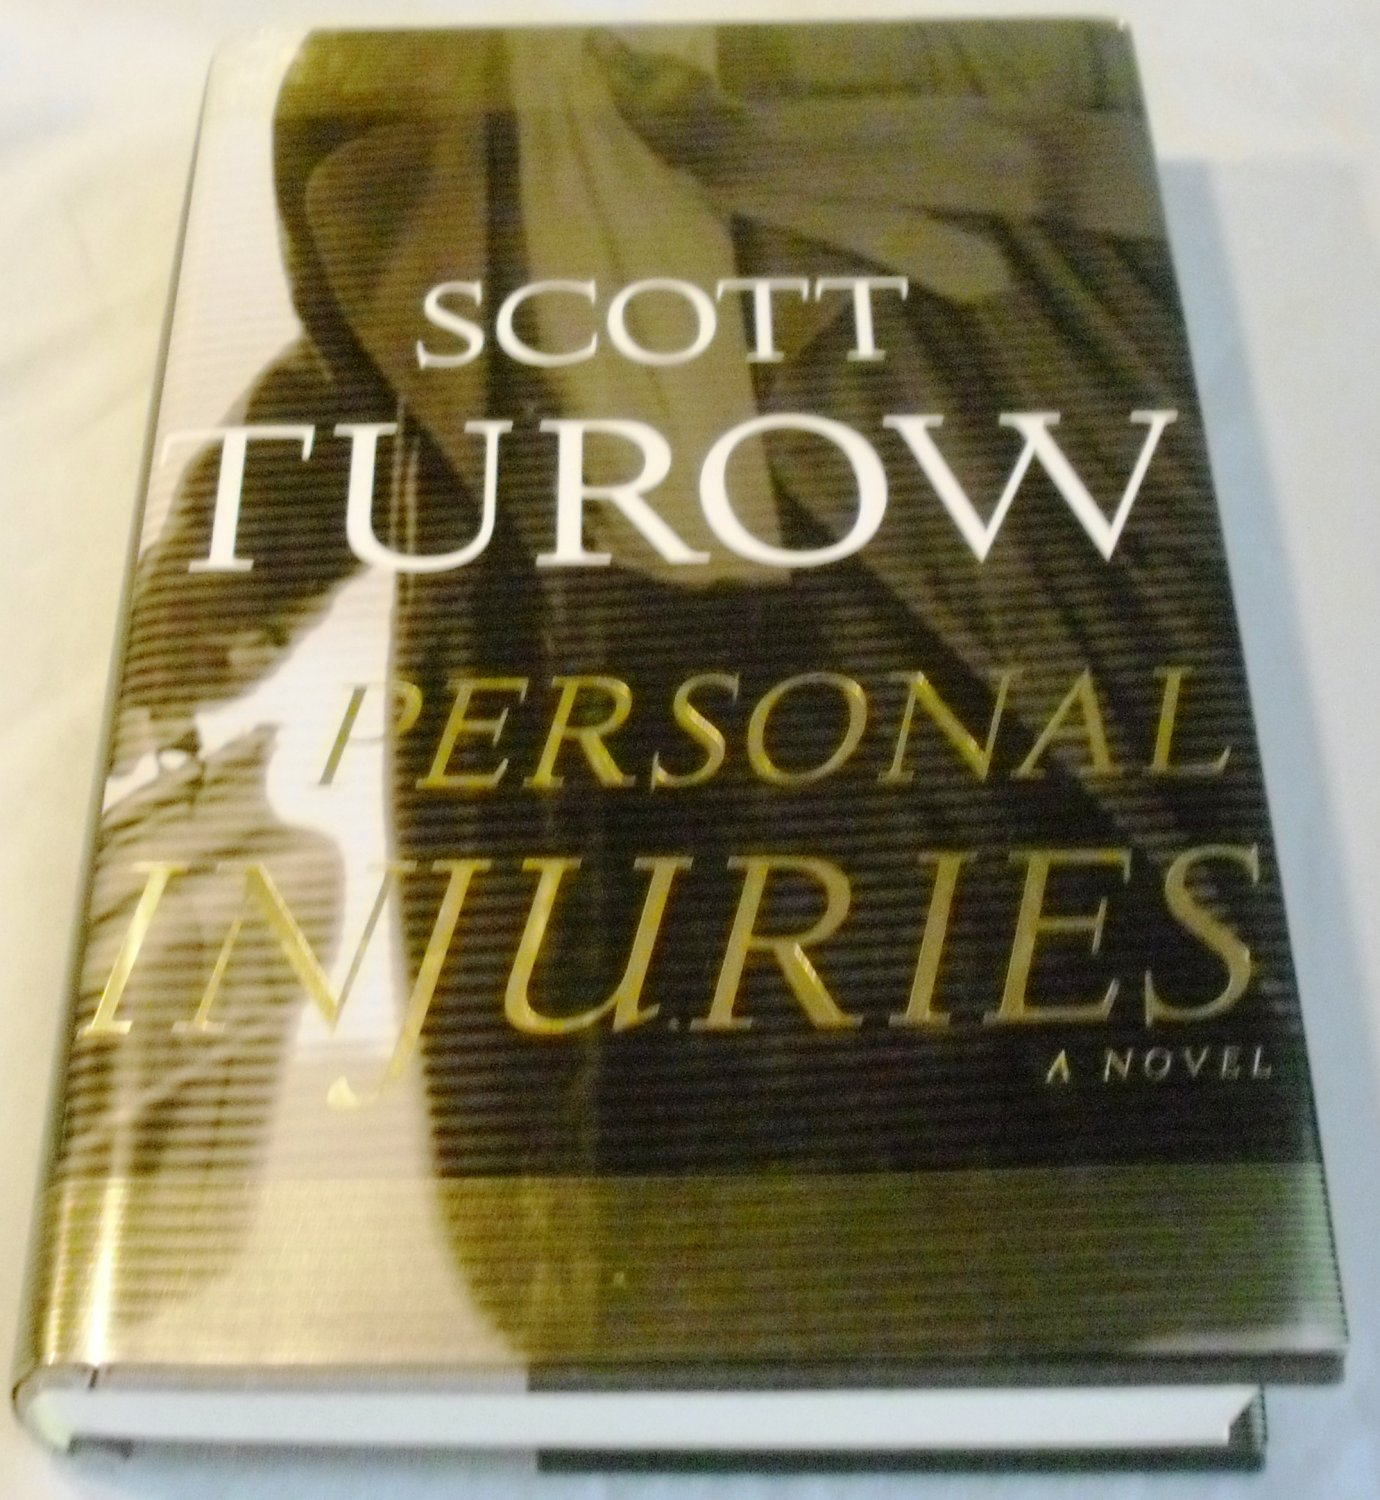 Personal Injuries (Scott Turow) by Scott Turow (Sep 28, 1999)